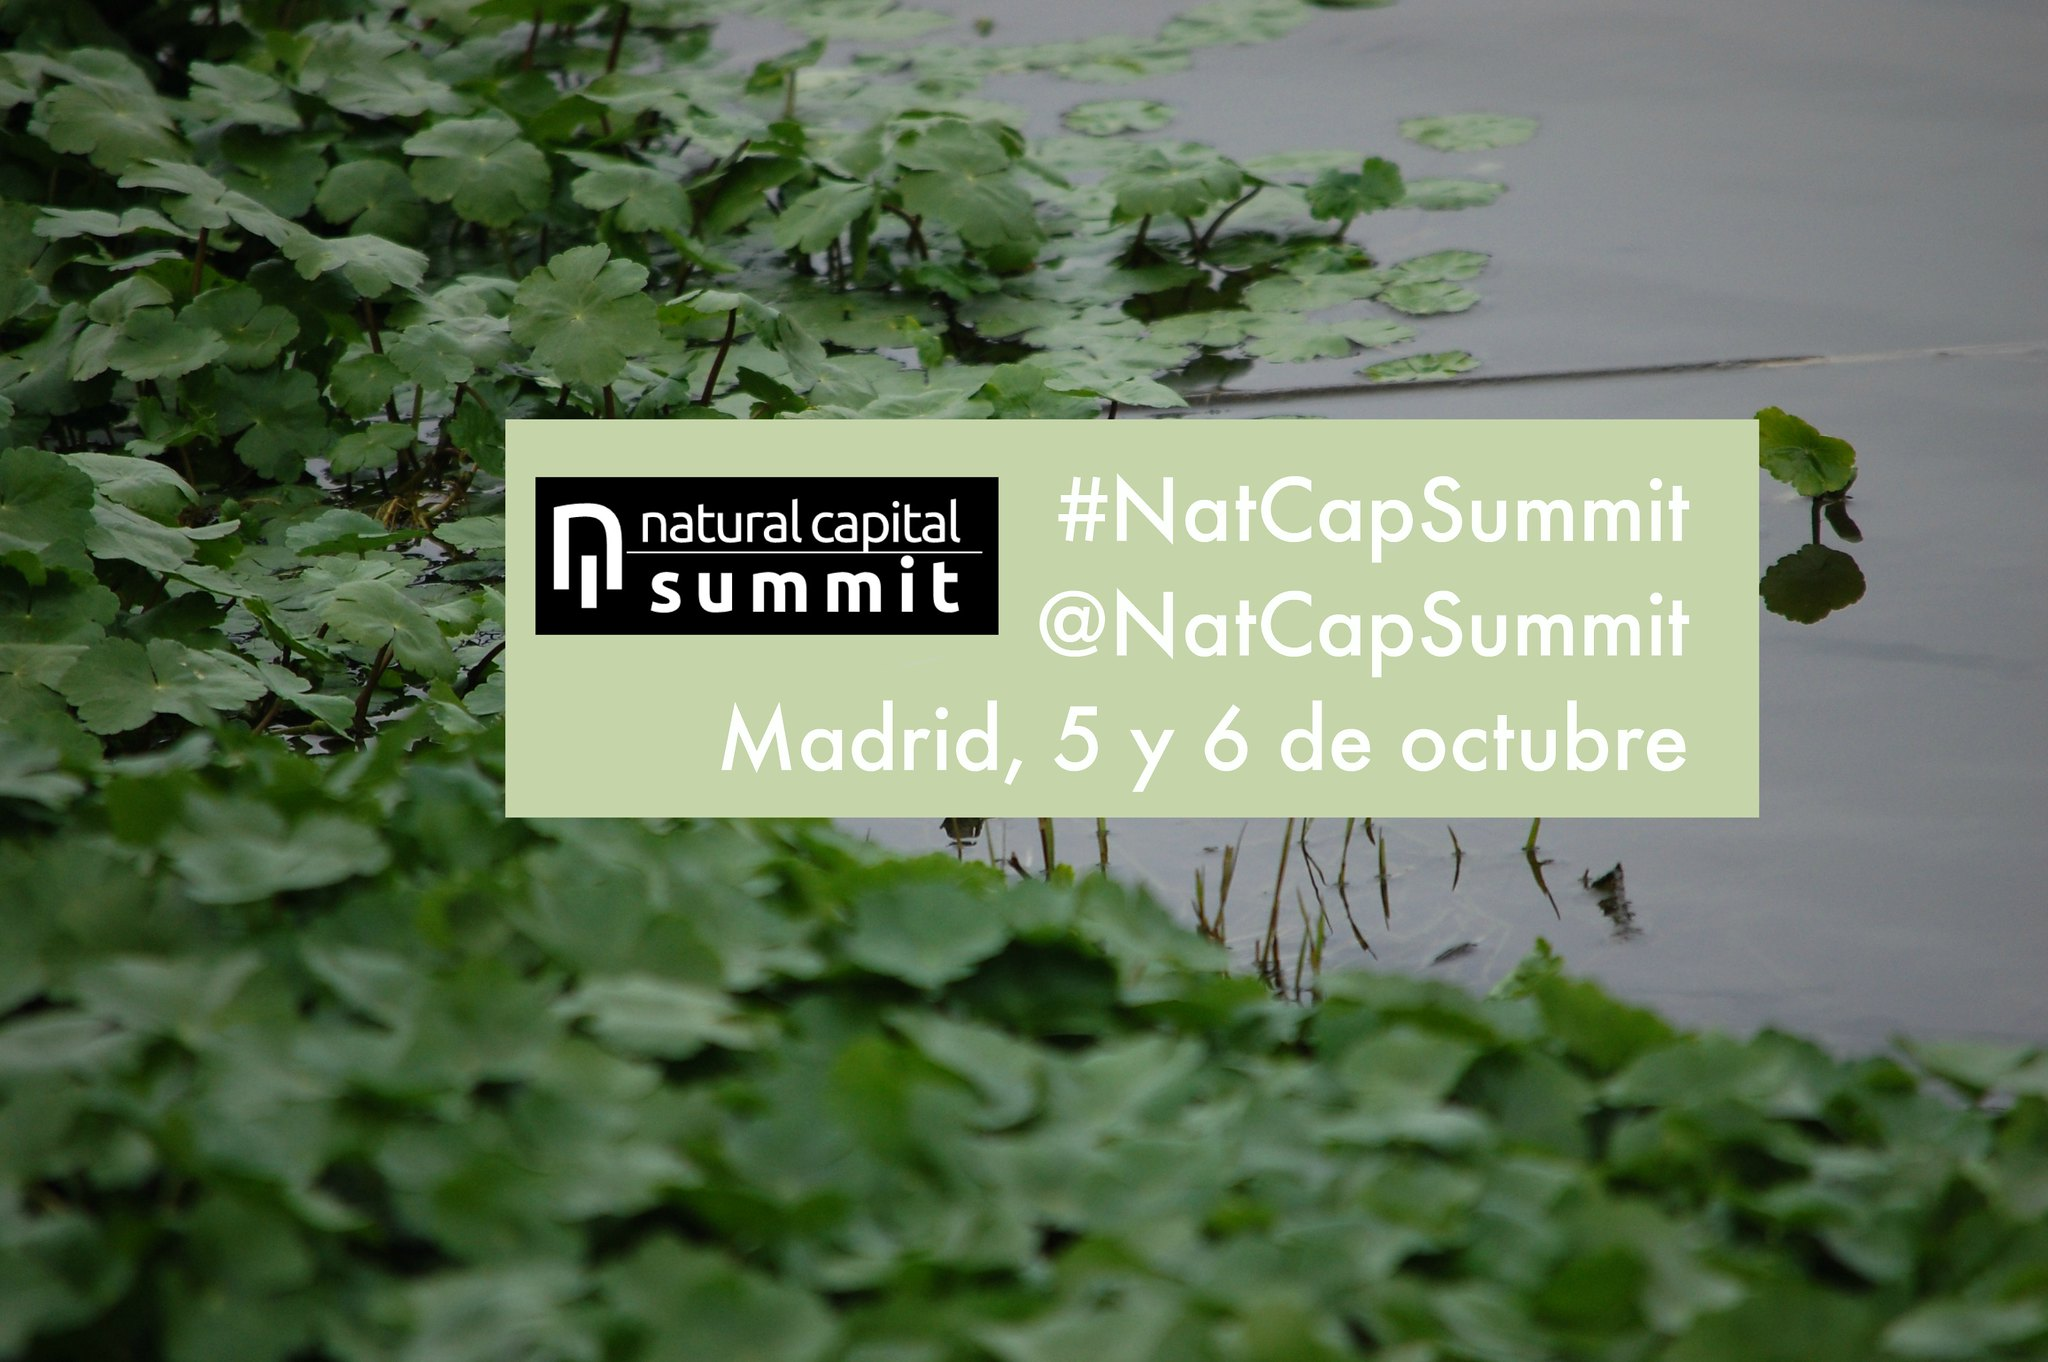 Anuncio Capital Natural Summit: estanque con plantas